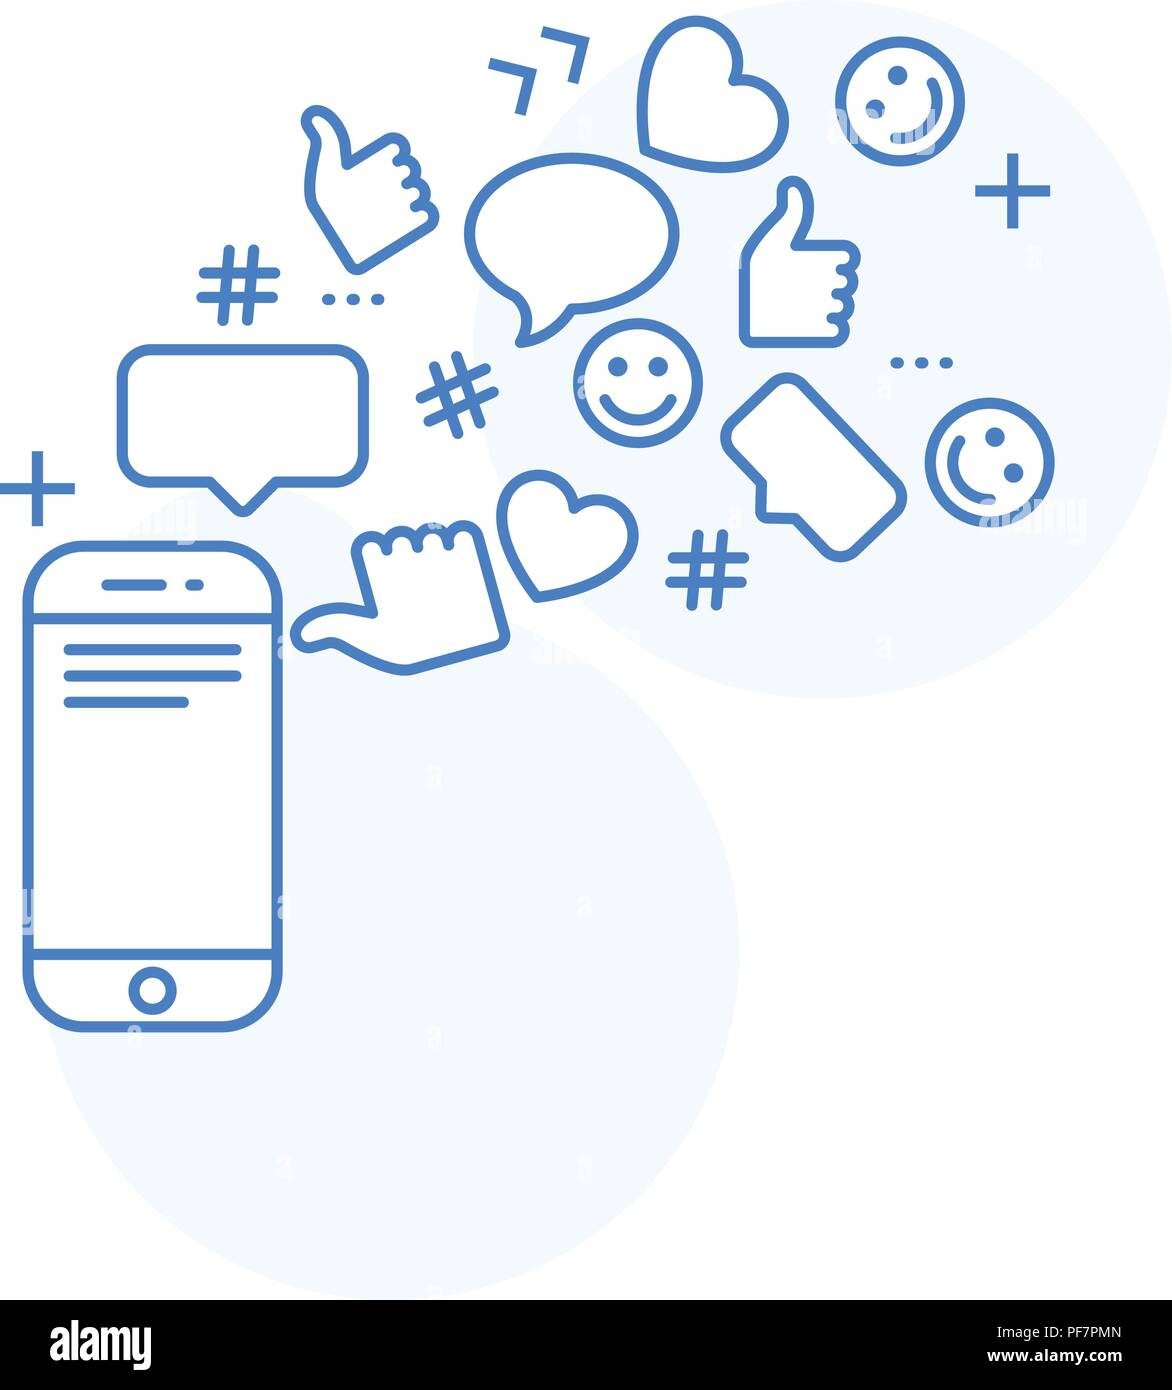 Viral content and smm concept - likes, shares and comments, online social activity - Stock Image